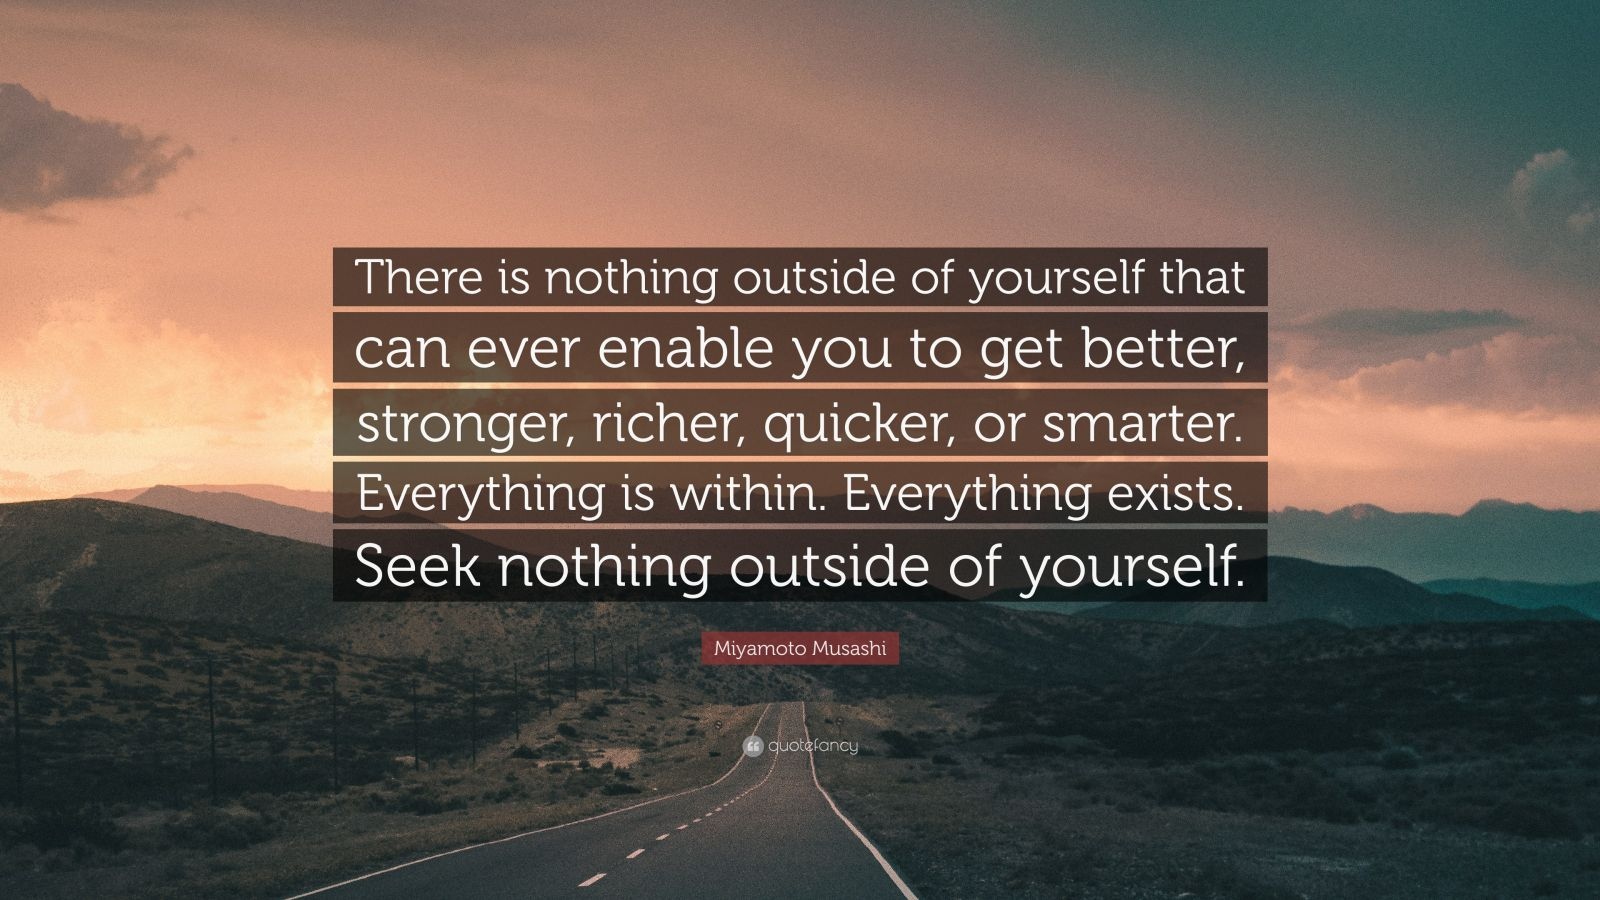 """Miyamoto Musashi Quote: """"There is nothing outside of yourself that can ever enable you to get better, stronger, richer, quicker, or smarter.  Everything is within.  Everything exists.  Seek nothing outside of yourself."""""""